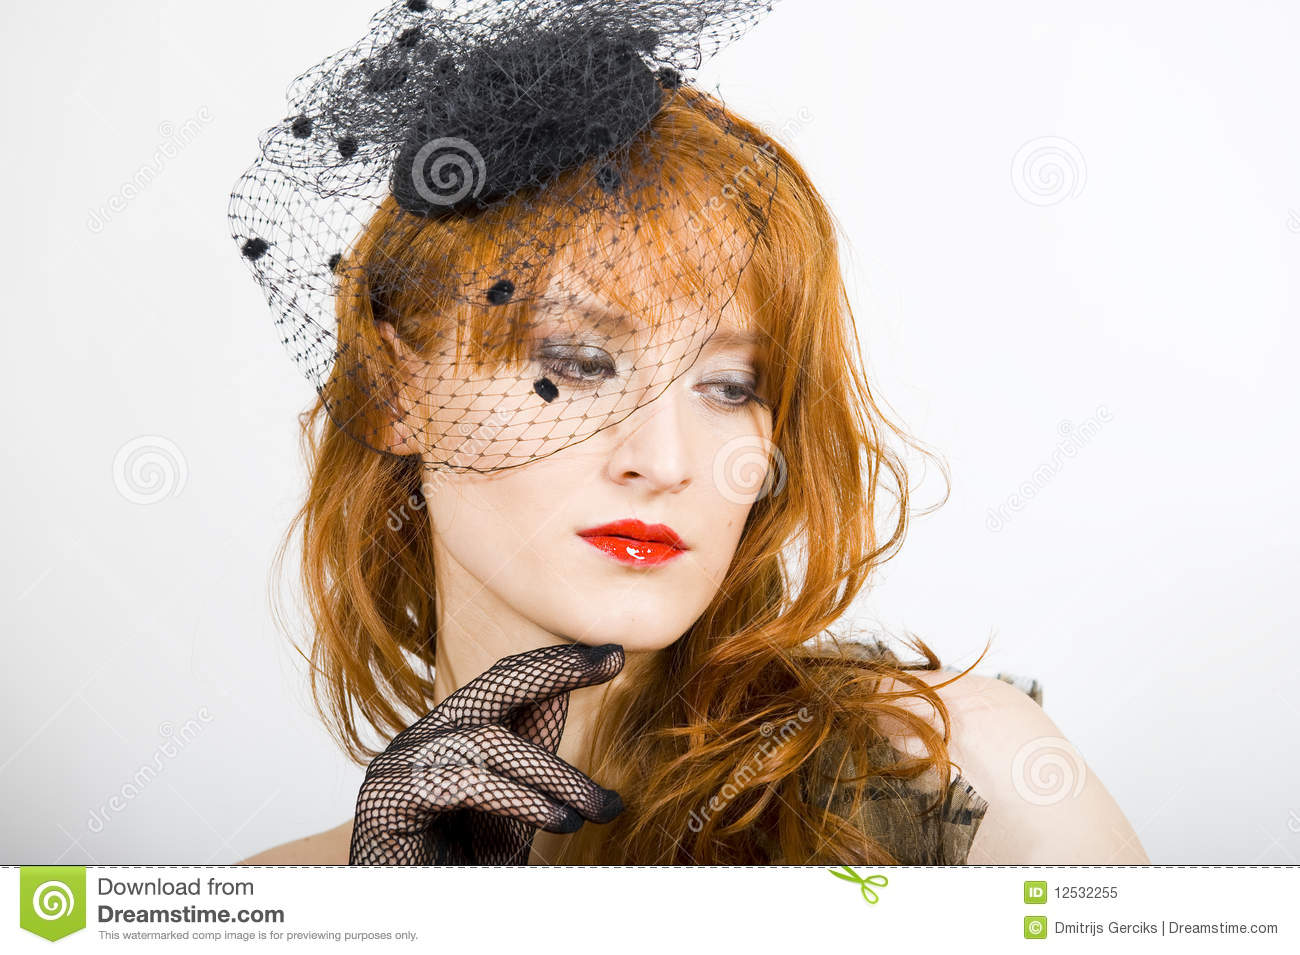 Beautiful Retro Woman With Vintage Hat And Veil Stock Image - Image ... d7651300407b